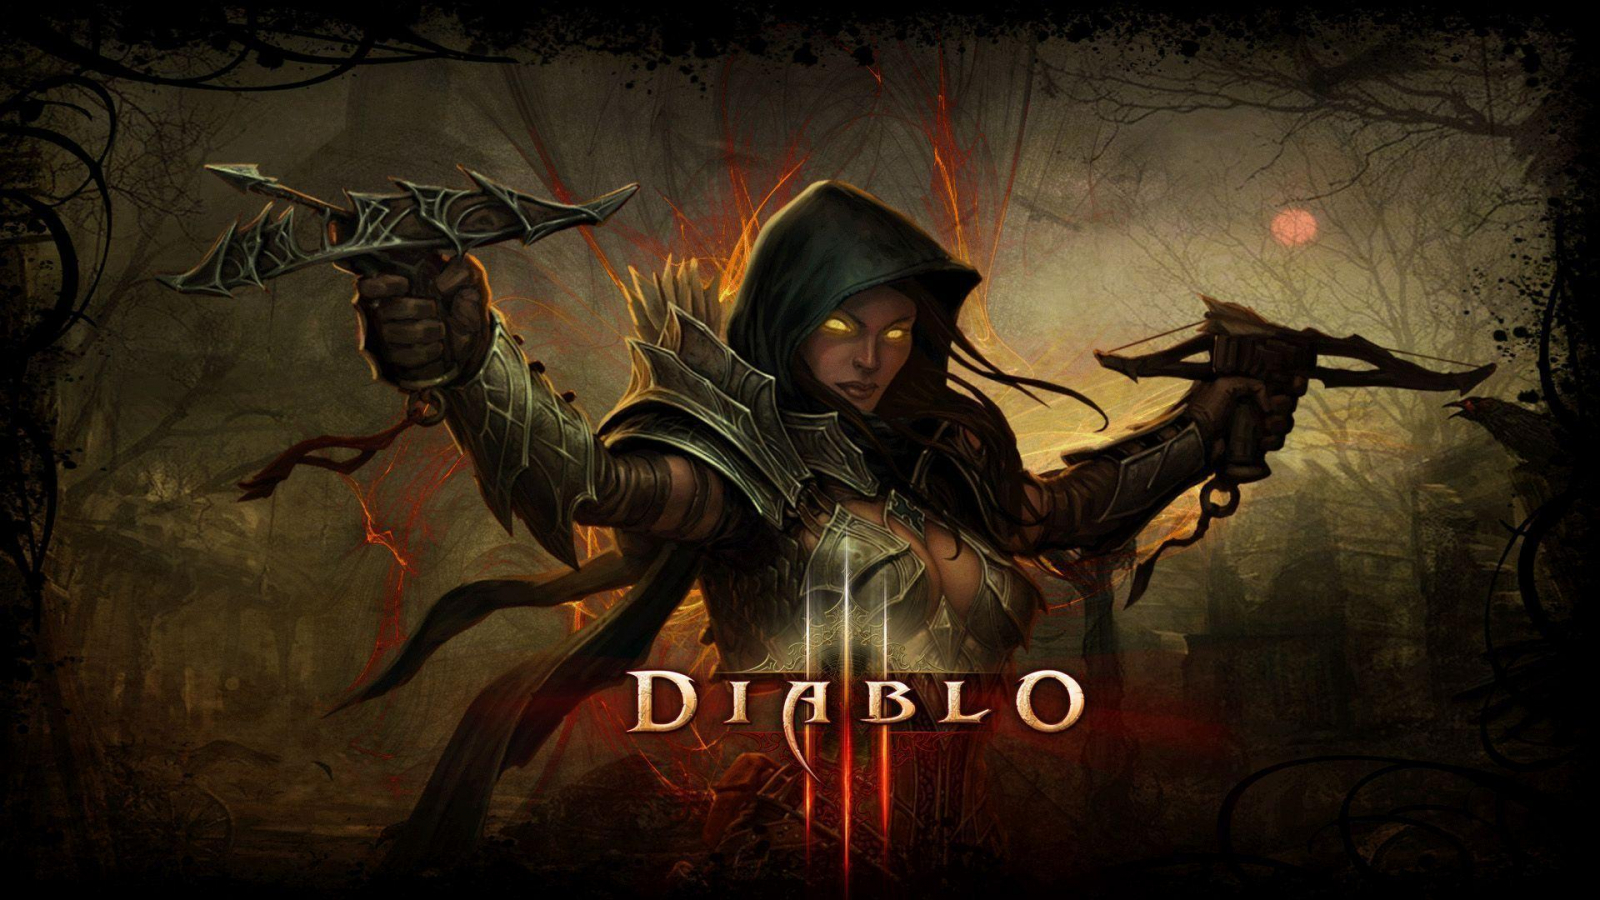 Free Download Pics Photos Diablo Iii Demon Hunter Artwork Hd